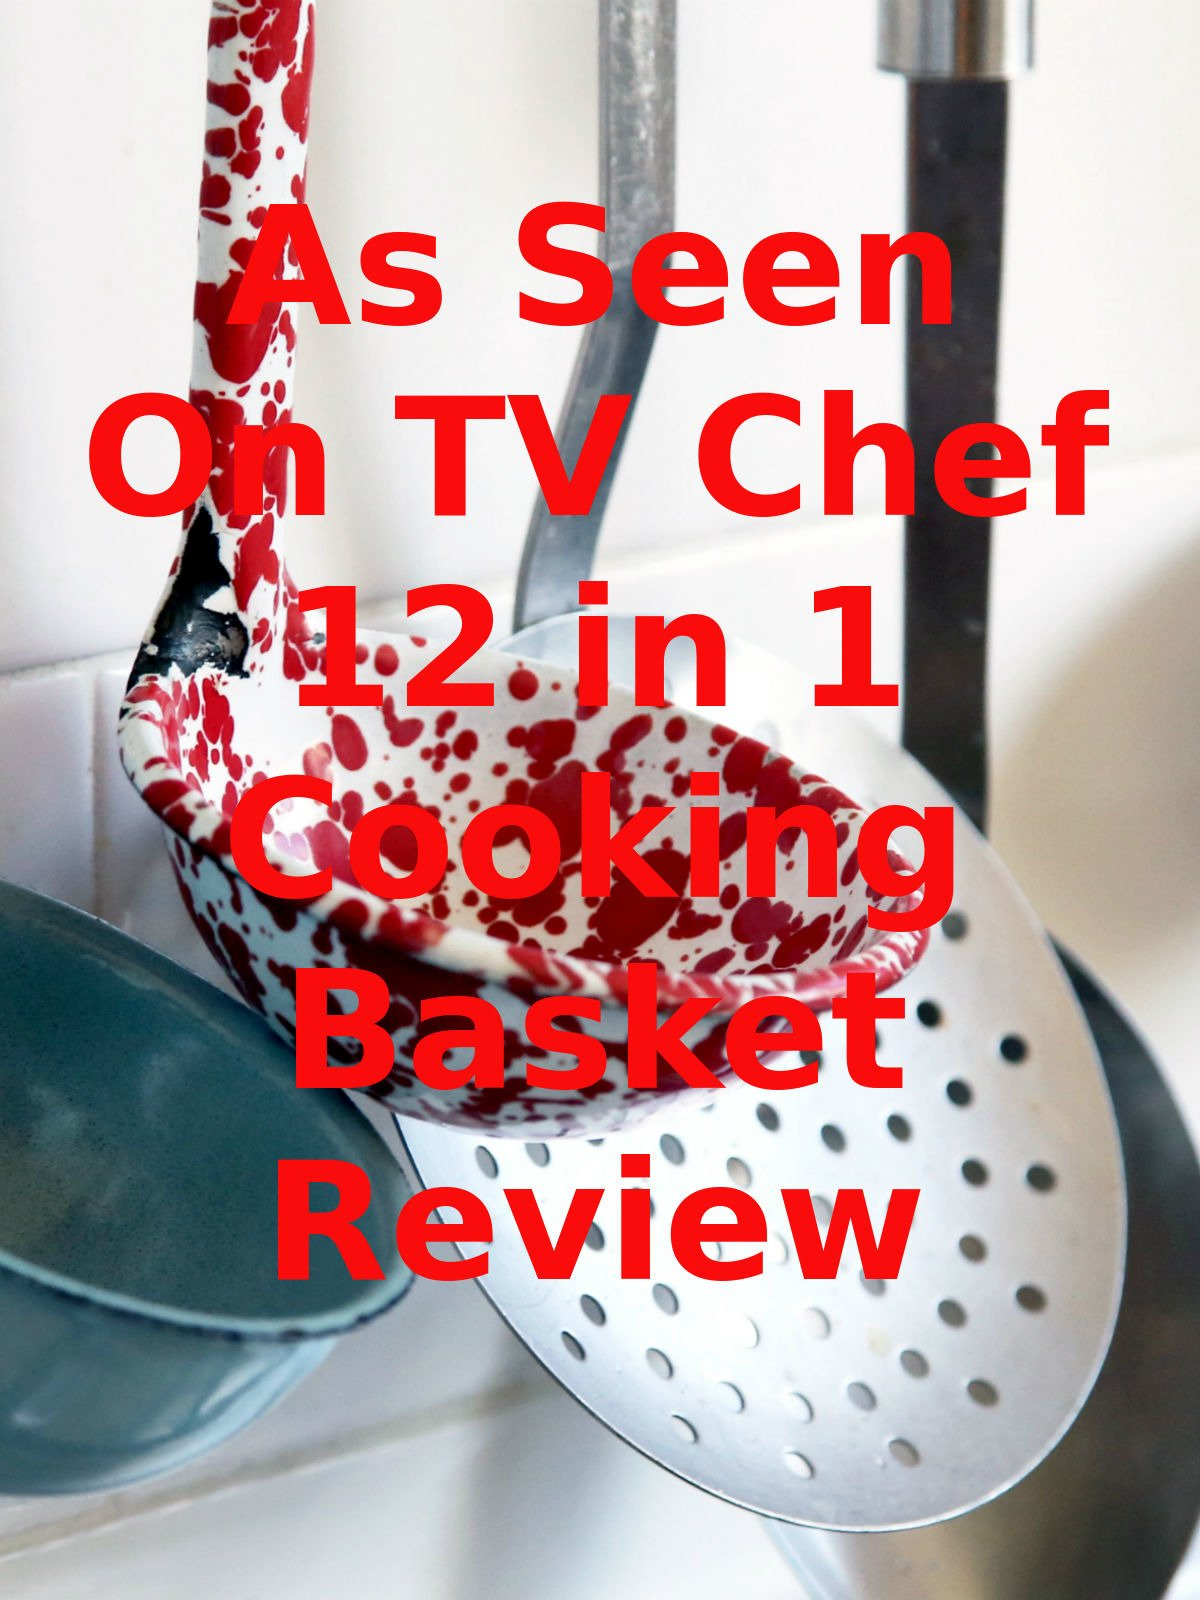 Review: As Seen On TV Chef 12 in 1 Cooking Basket Review